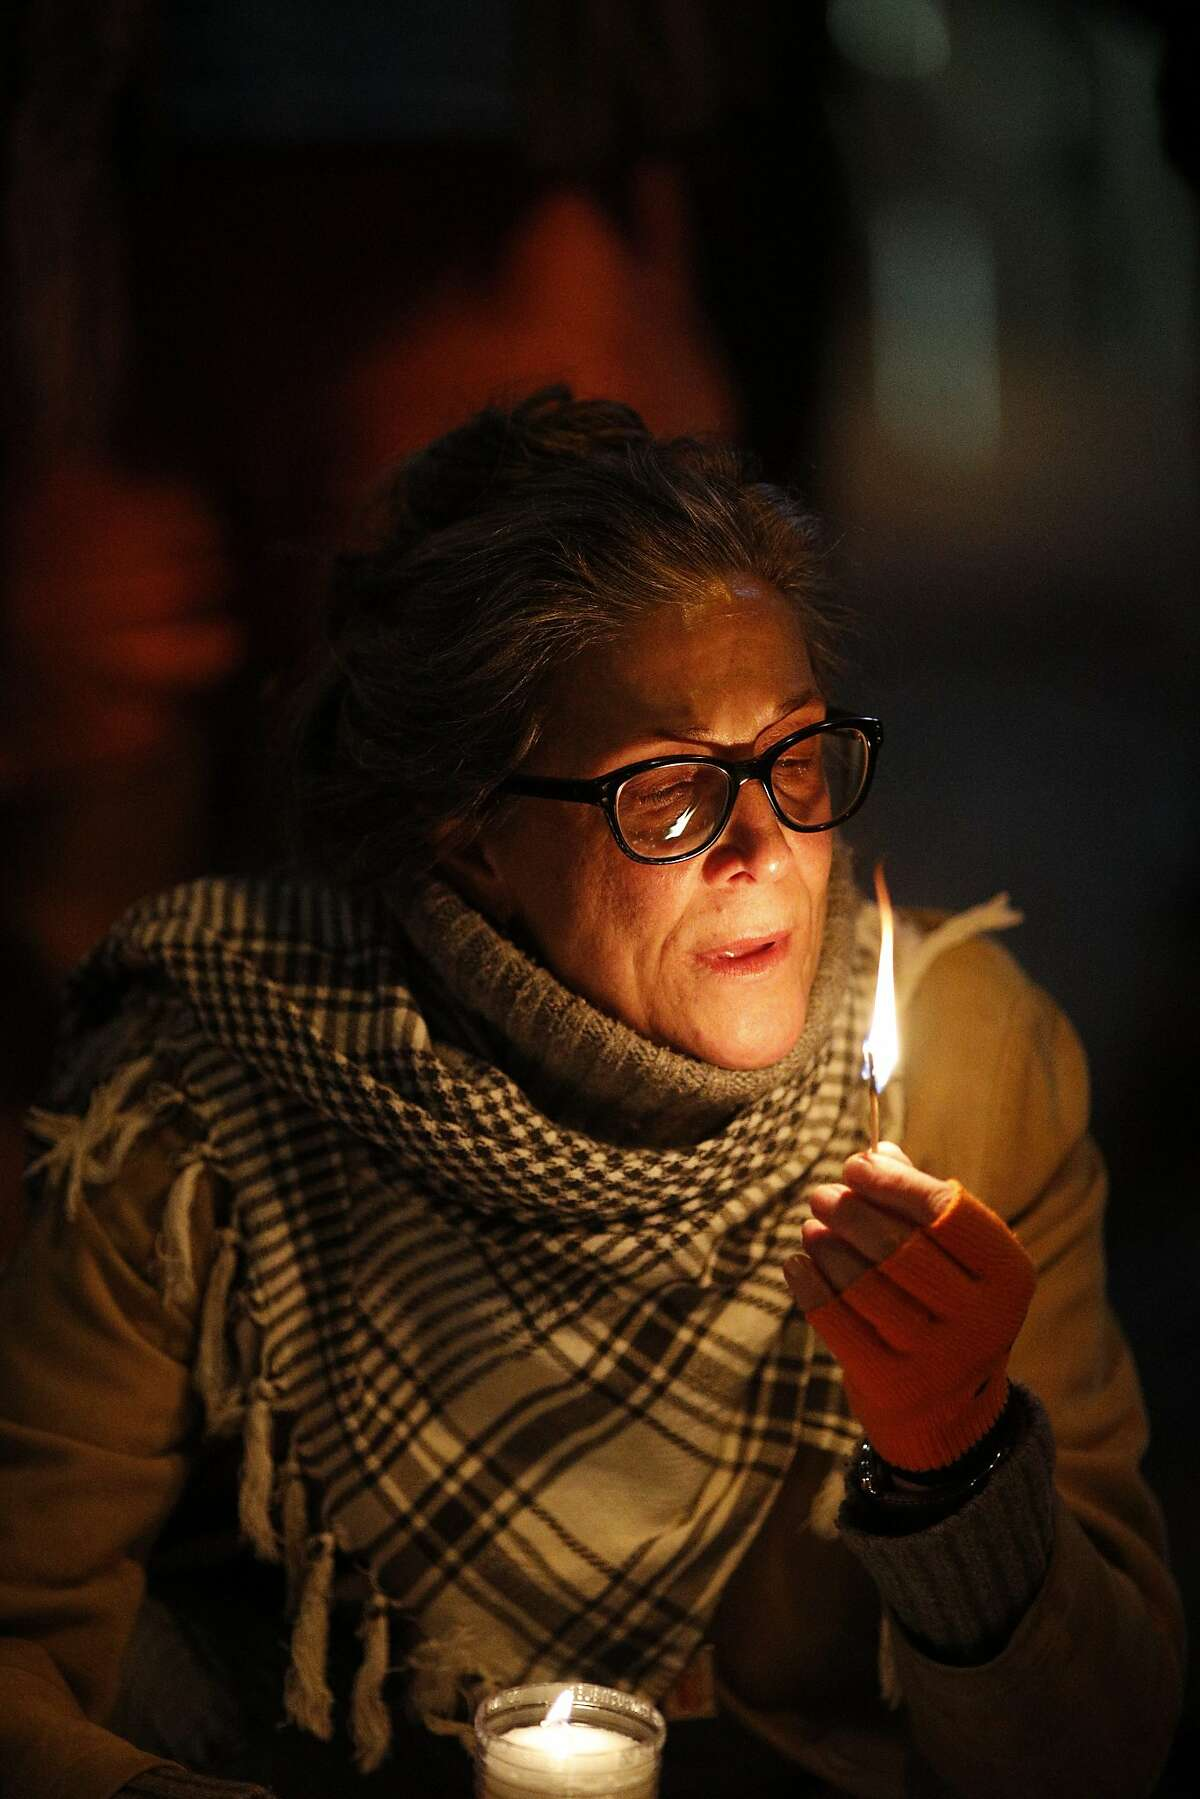 Kimberly Connor's son had a friend who was killed in the fire lights a candle at the vigil for the December 2, 206 Oakland warehouse fire that killed at least 36 people in the San Francisco, CA.